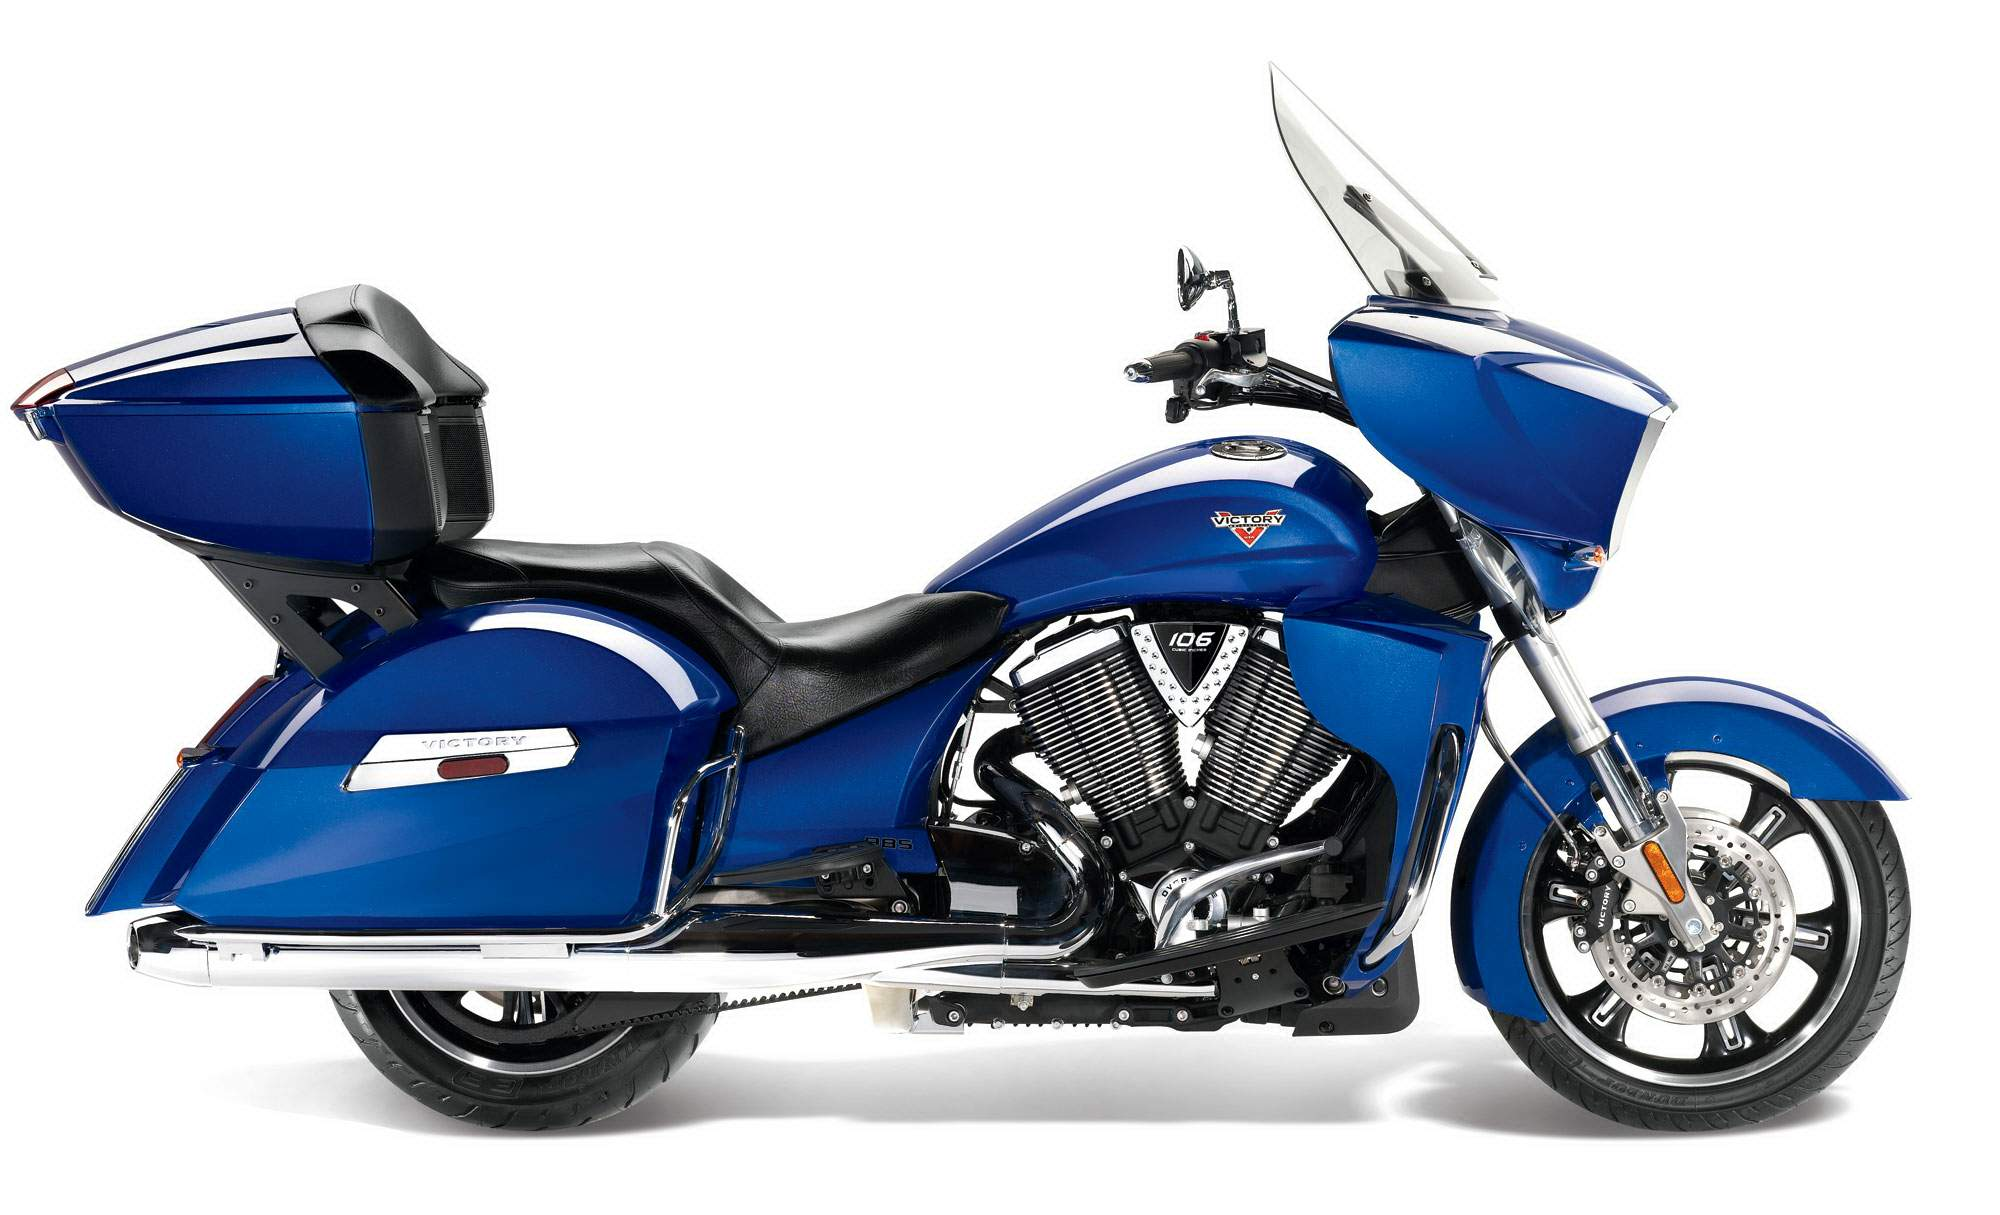 Victory Cross Country Tour For Sale Specifications, Price and Images